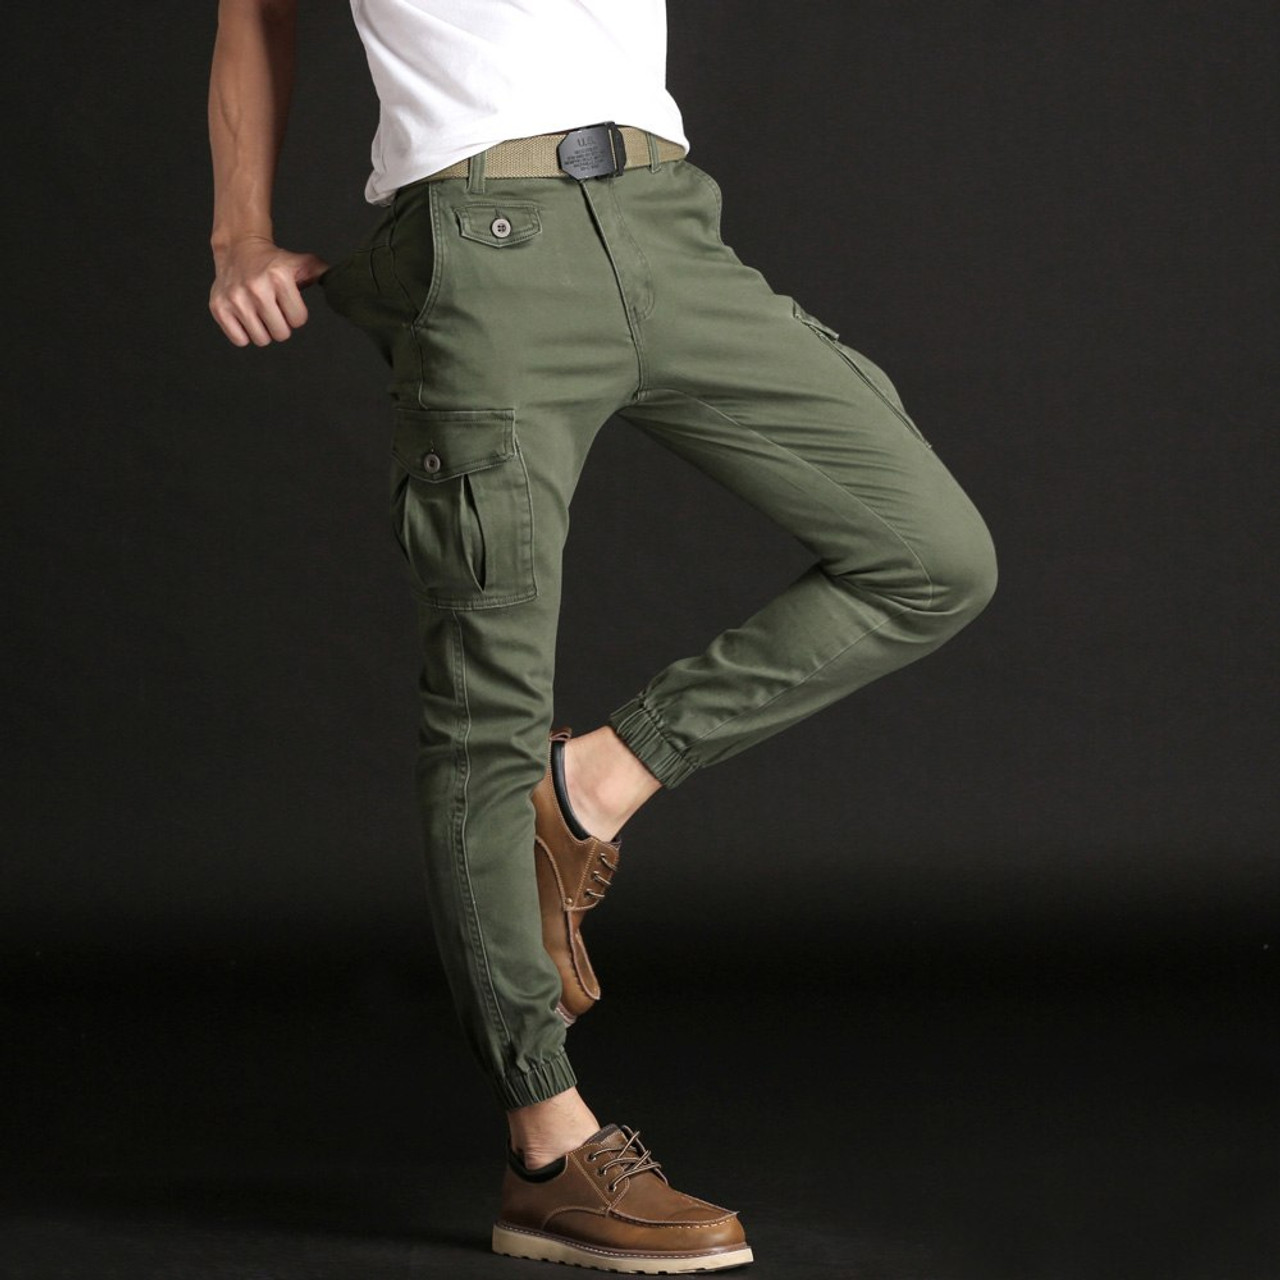 e7d4f9c5f4 ... NIGRITY Tactical new fashion Pants Male Jogger Casual Plus Size Cotton  Trousers Multi Pocket Military Style ...